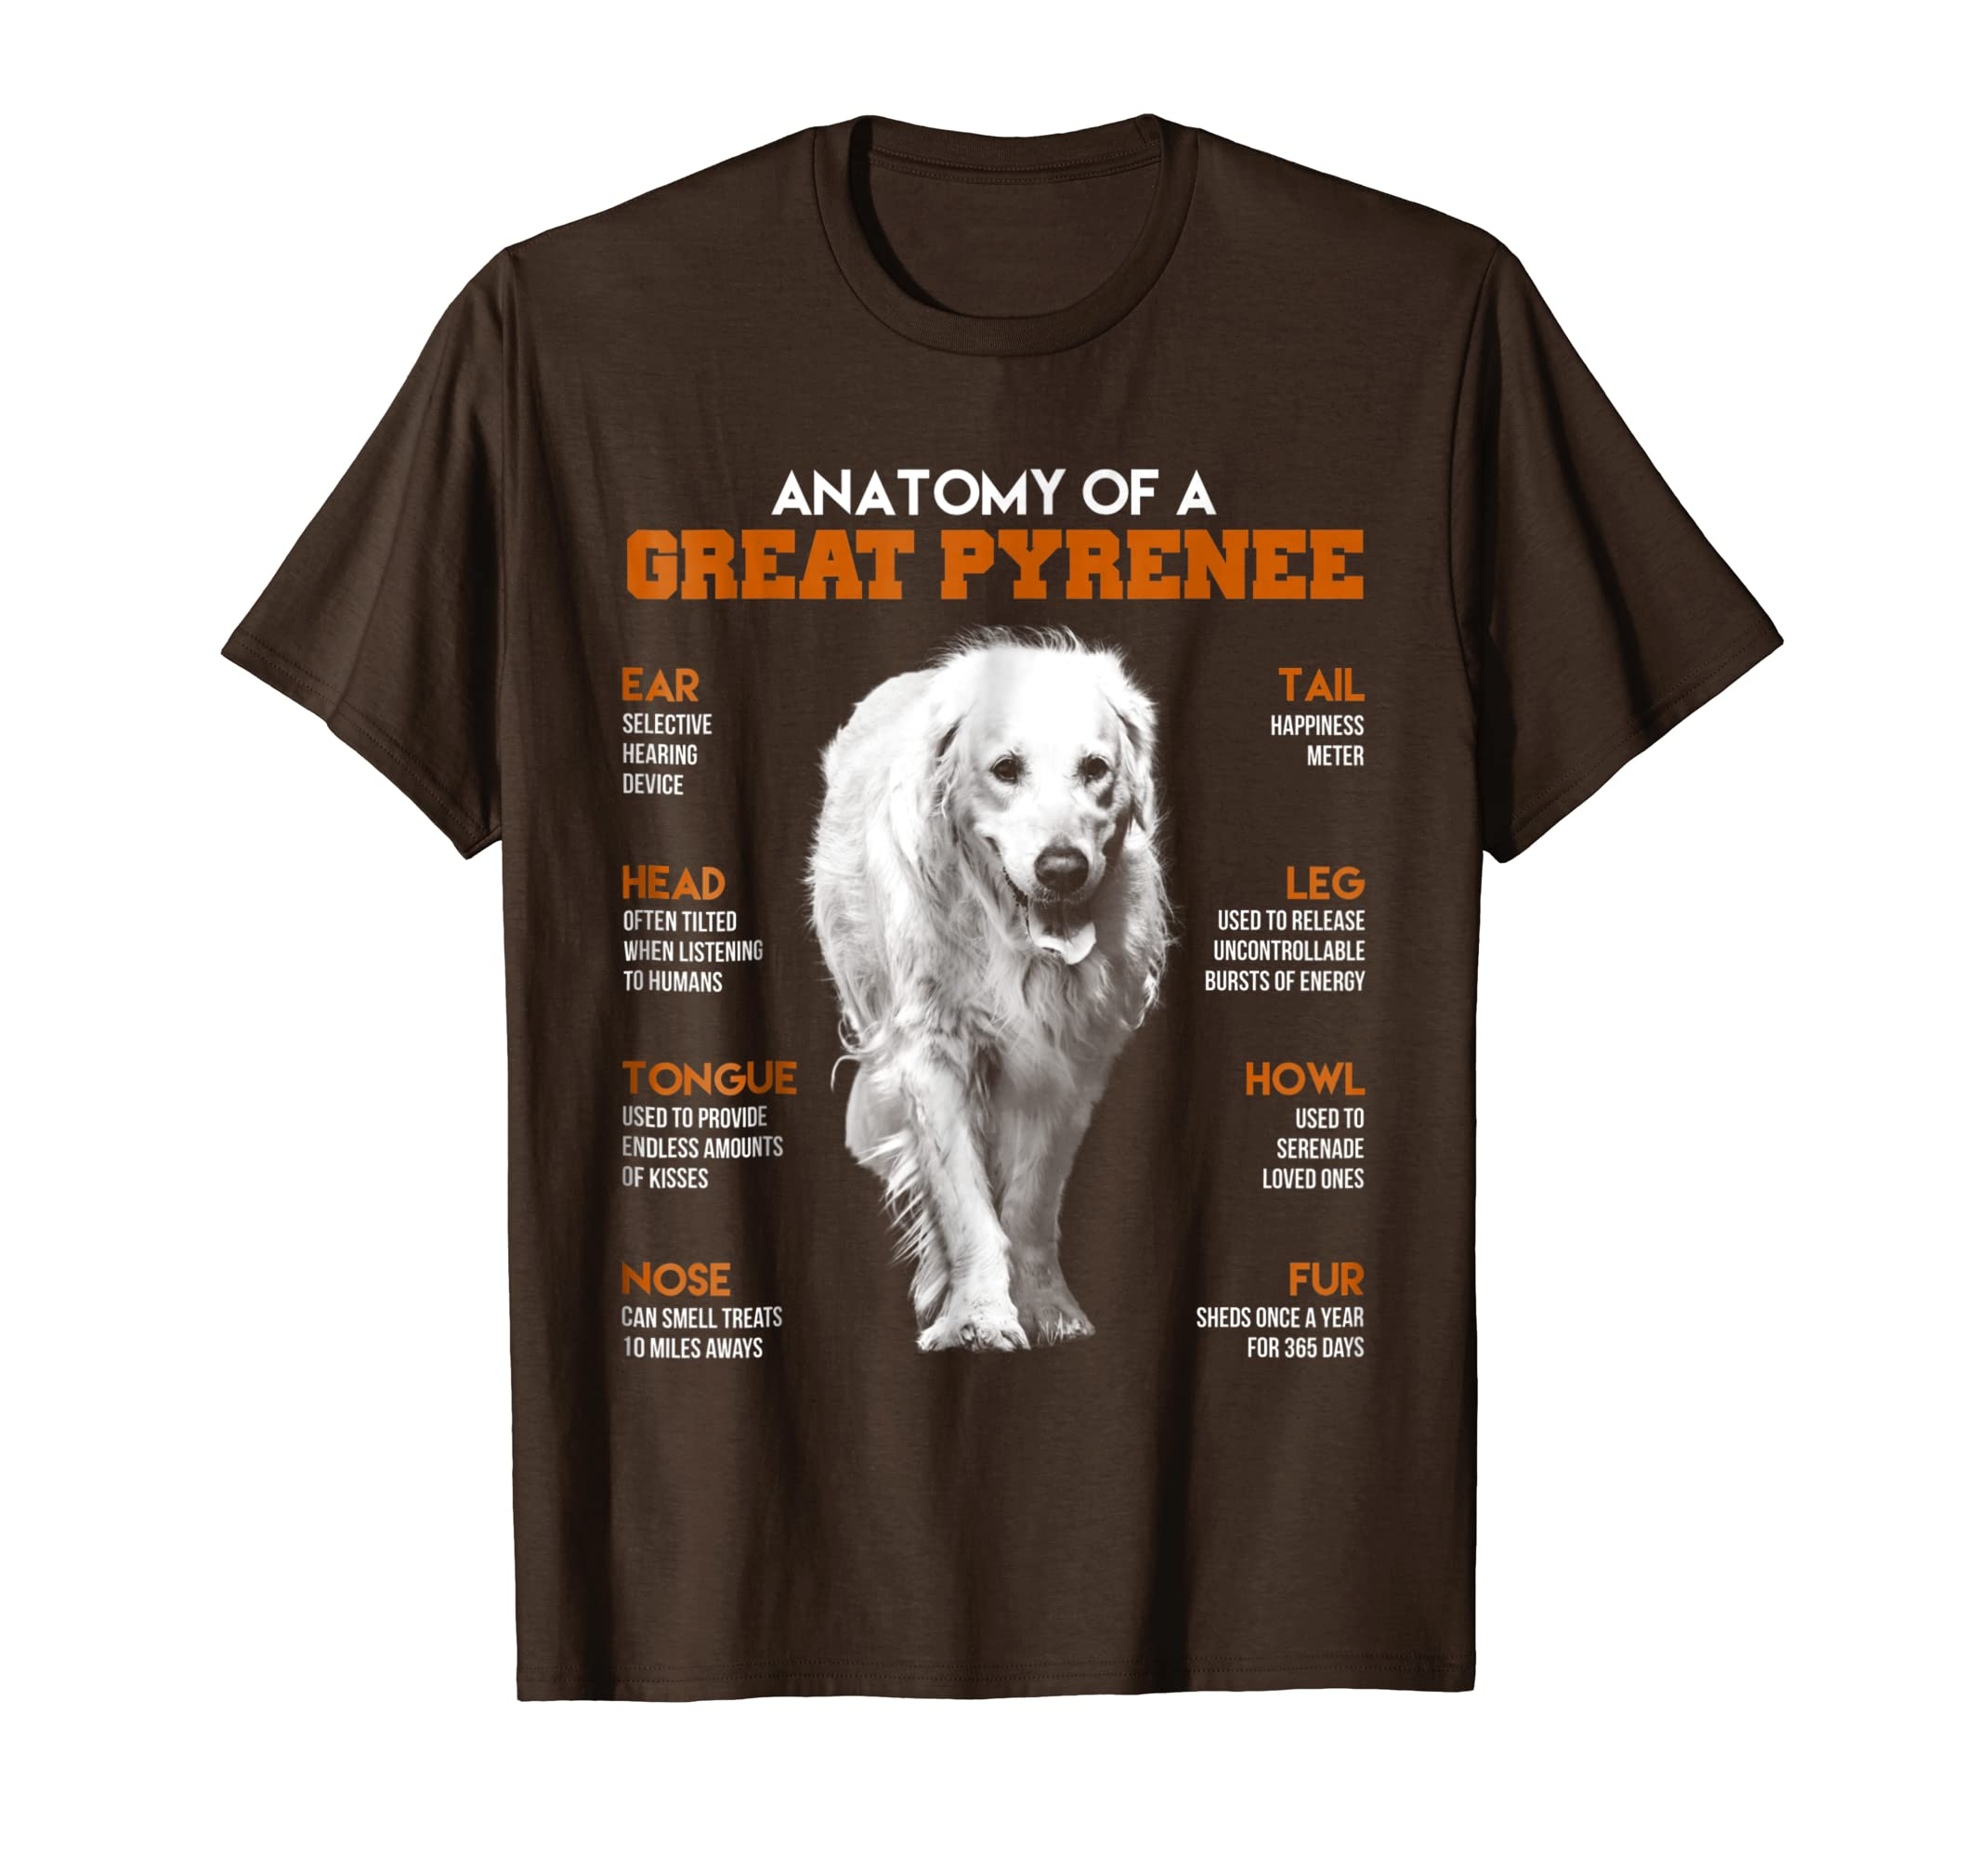 Amazon.com: Anatomy Of A Great Pyrenee Dogs T Shirt Funny Gift: Clothing